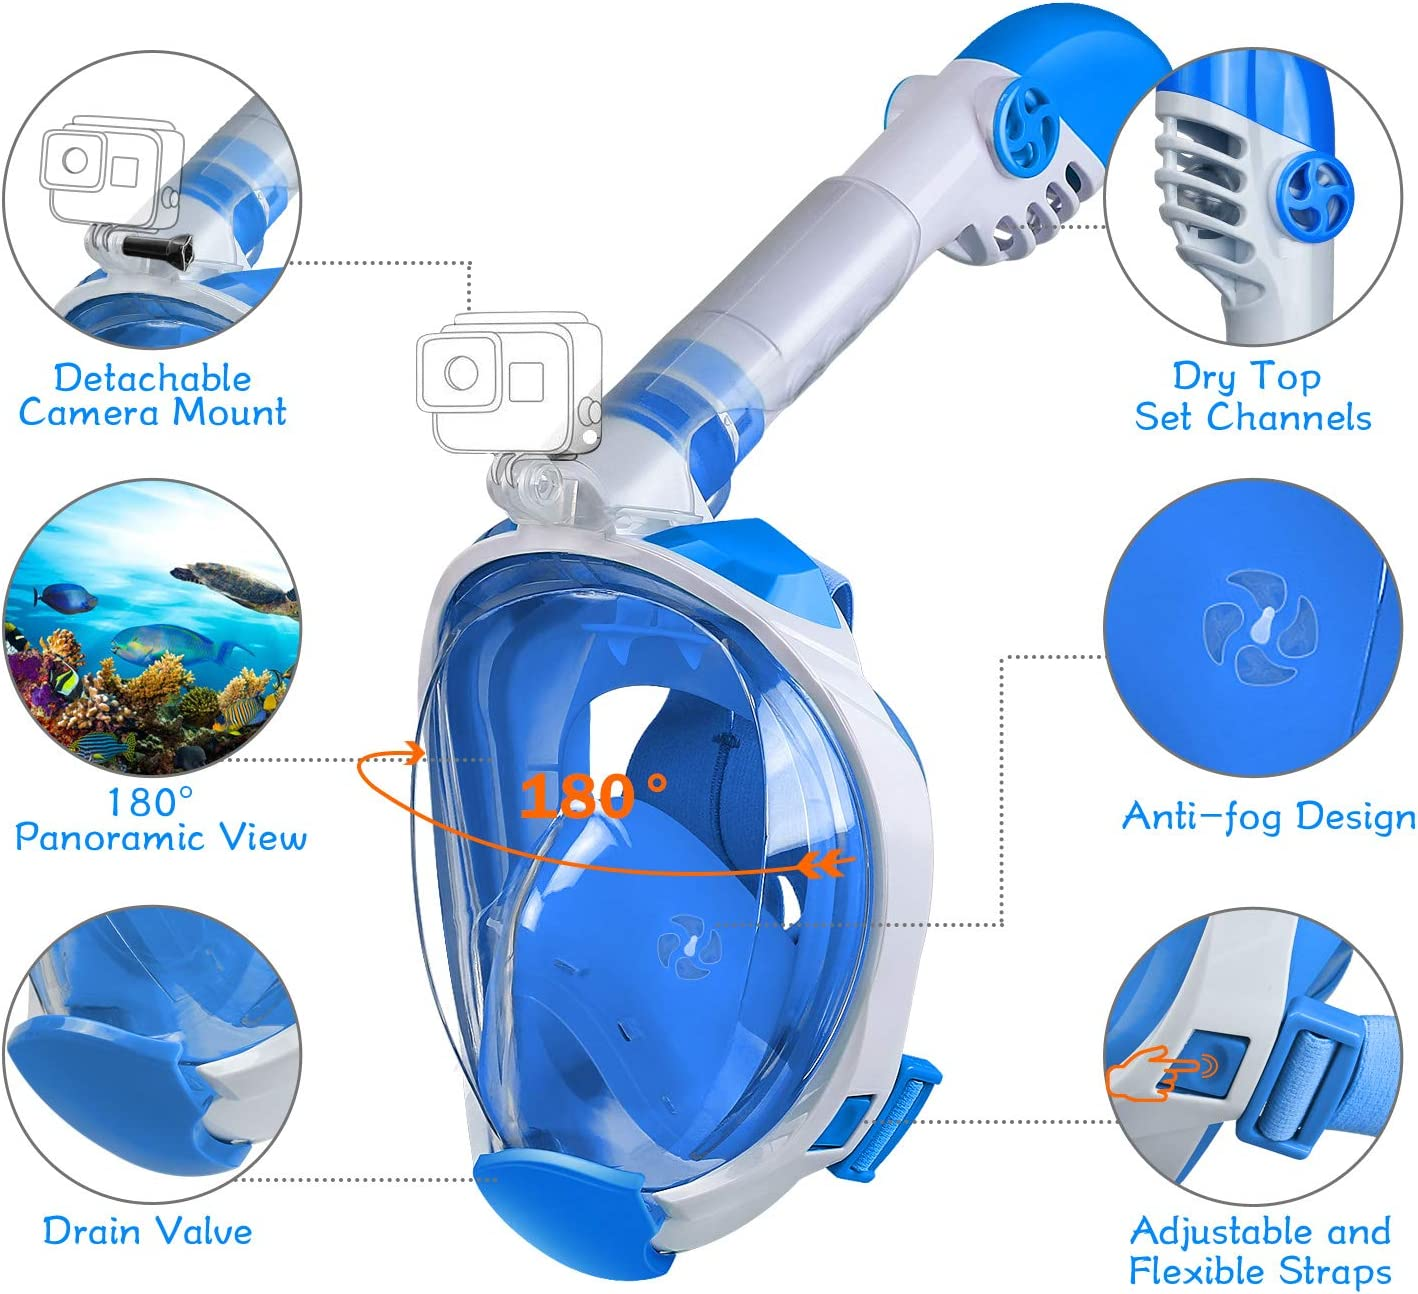 OUSPT Full Face Snorkel Mask Dry Top Set Anti-Fog Anti-Leak Snorkeling Mask with Detachable Camera Mount Panoramic 180/° View Upgraded Dive Mask with Safety Breathing System